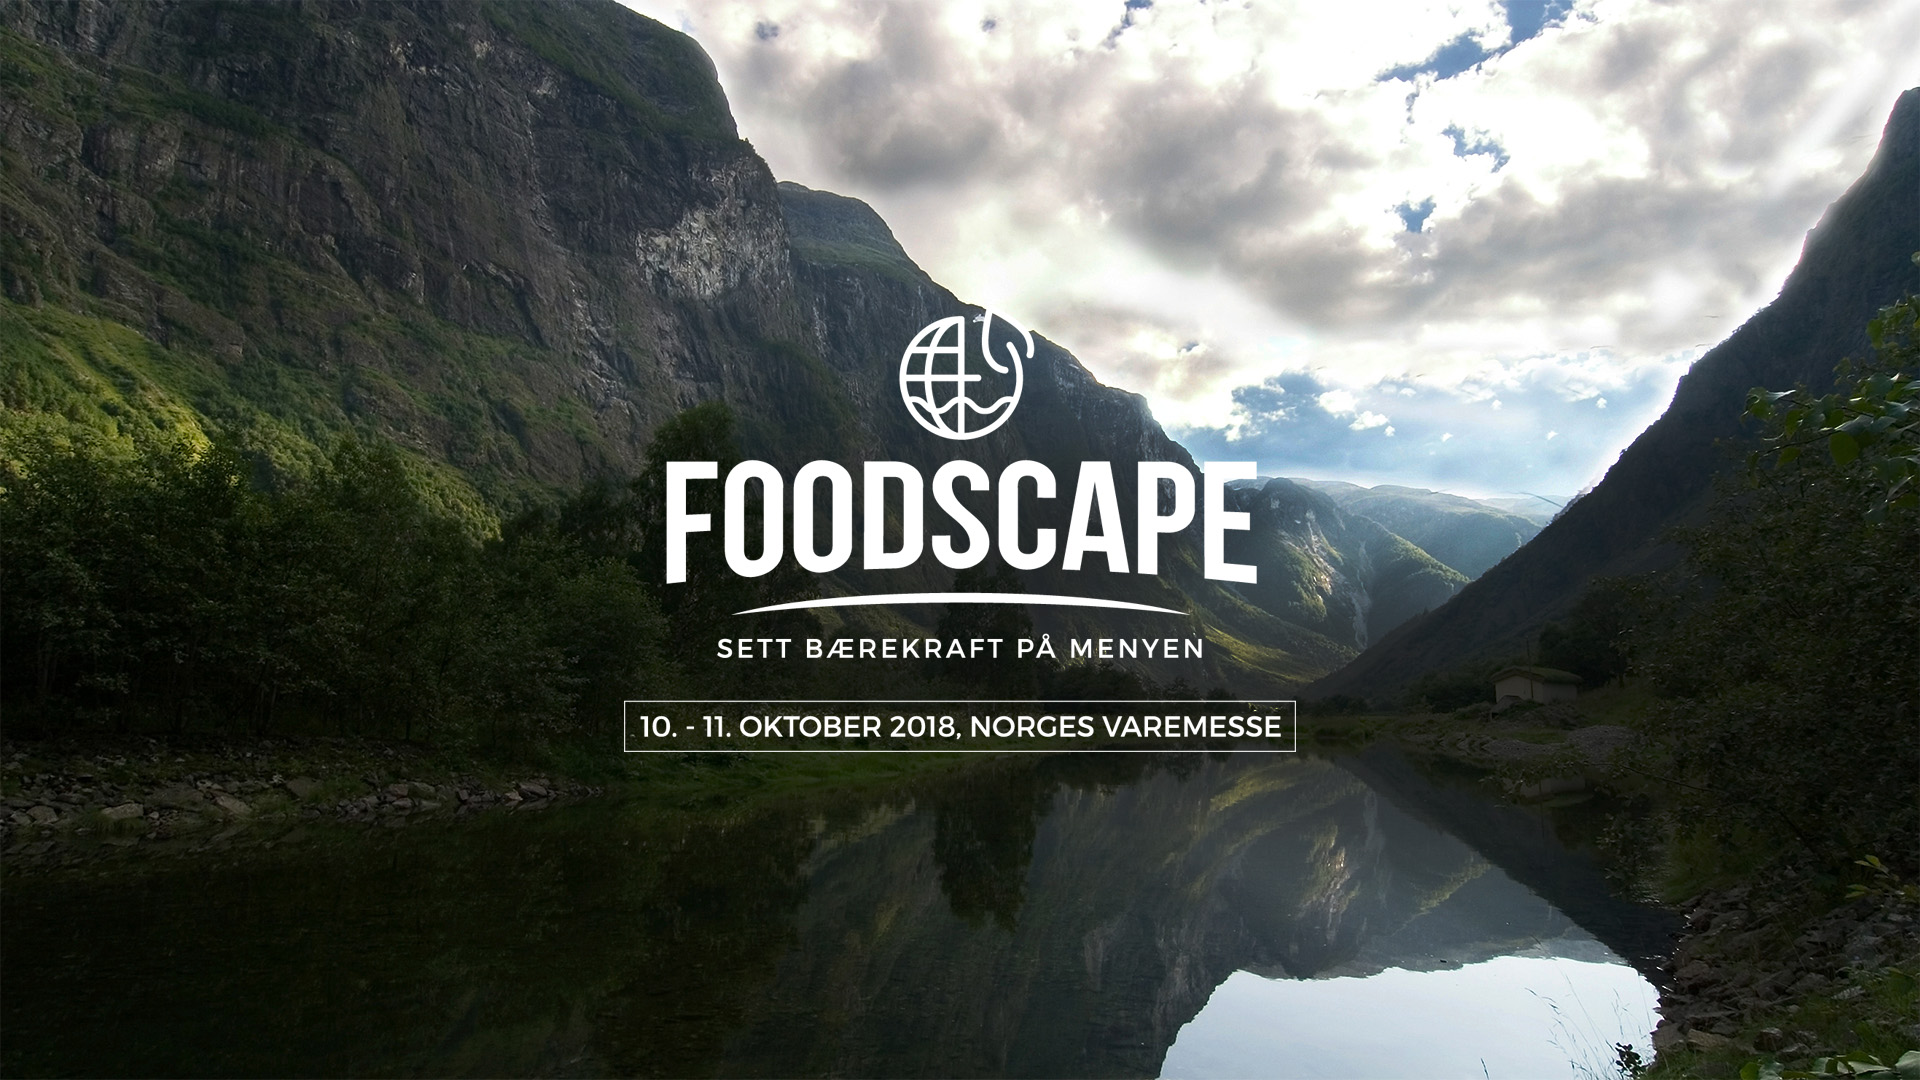 Foodtech klare for Foodscape